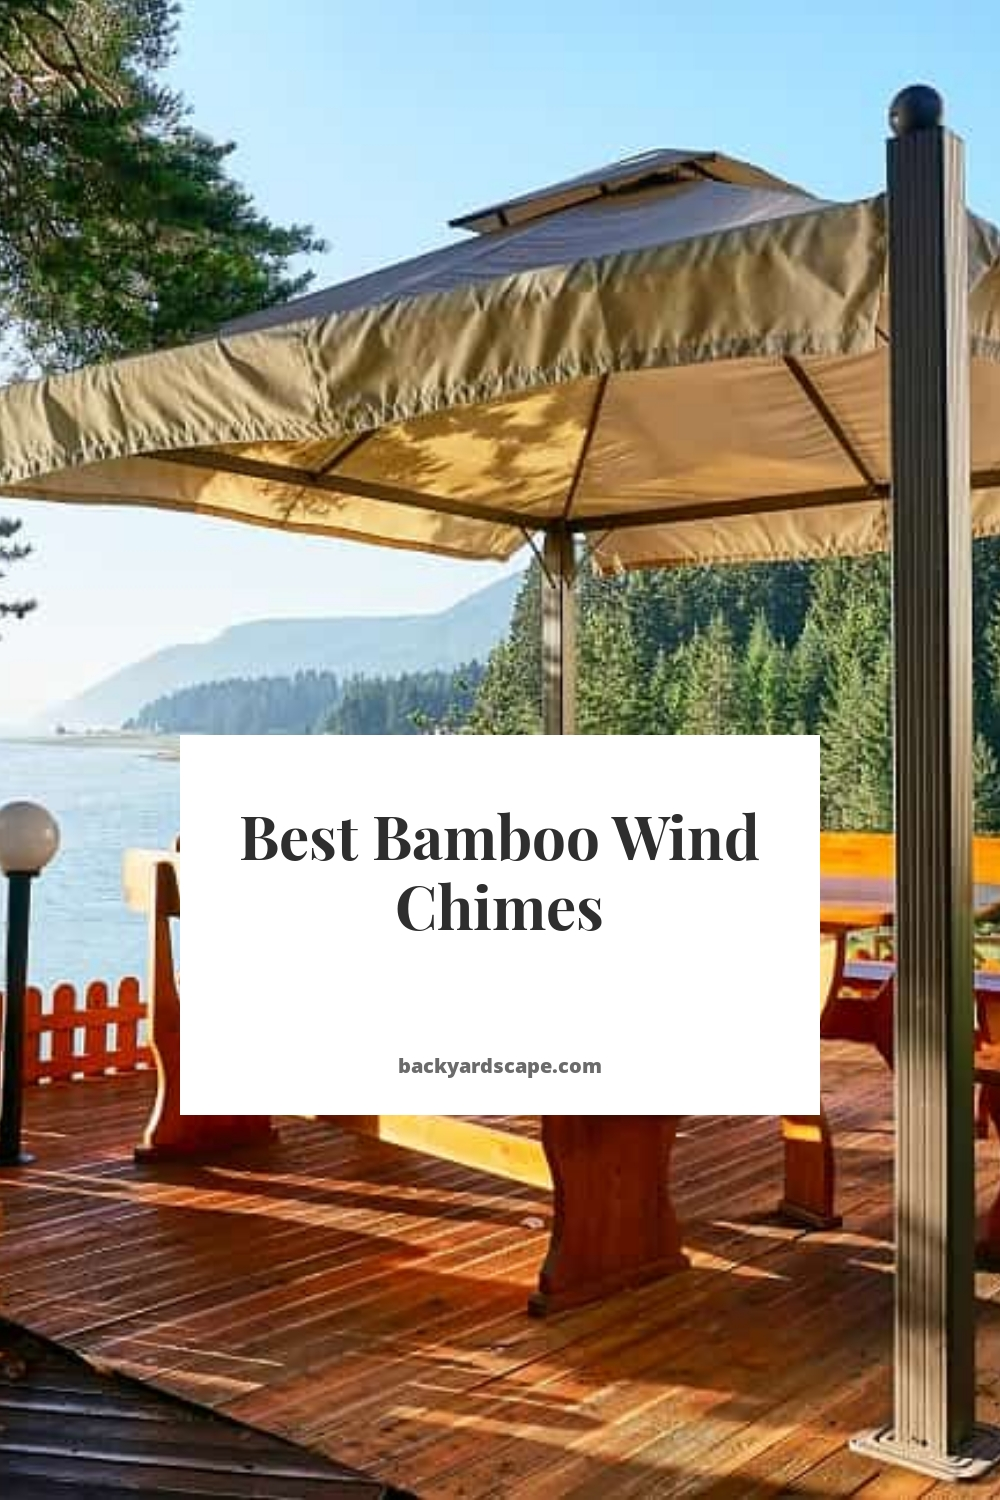 Best Bamboo Wind Chimes